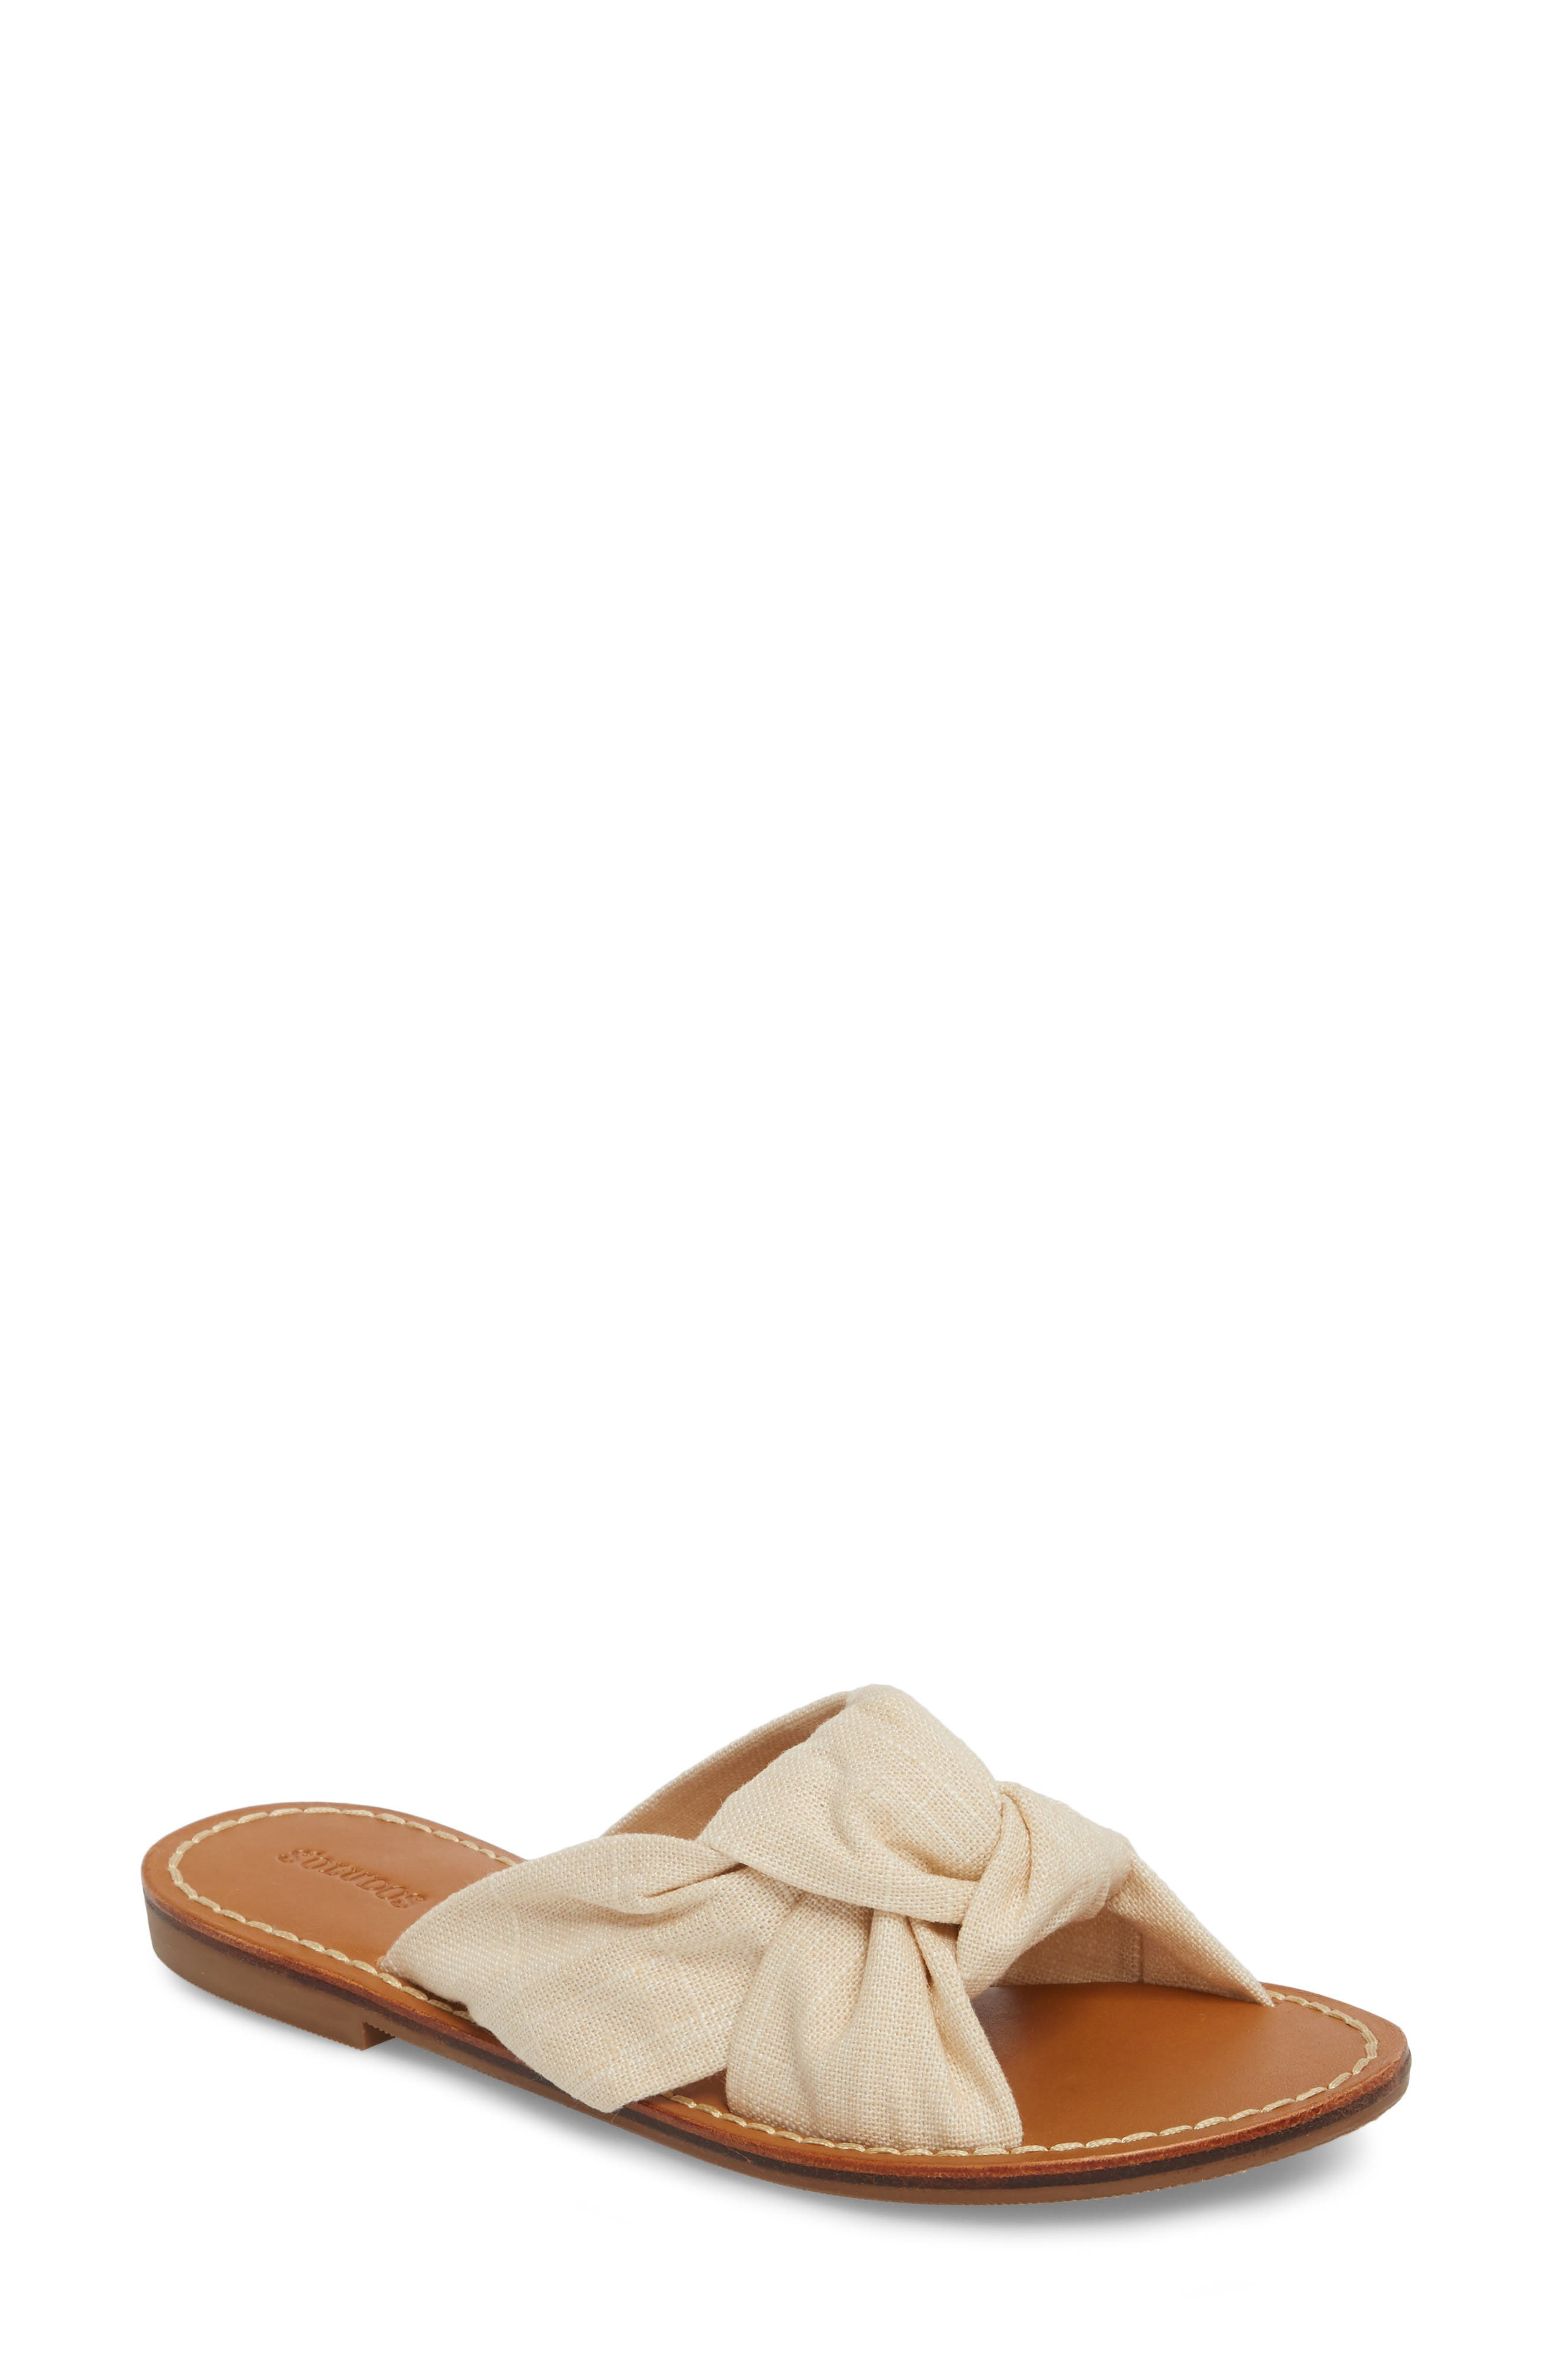 Knotted Slide Sandal,                             Main thumbnail 2, color,